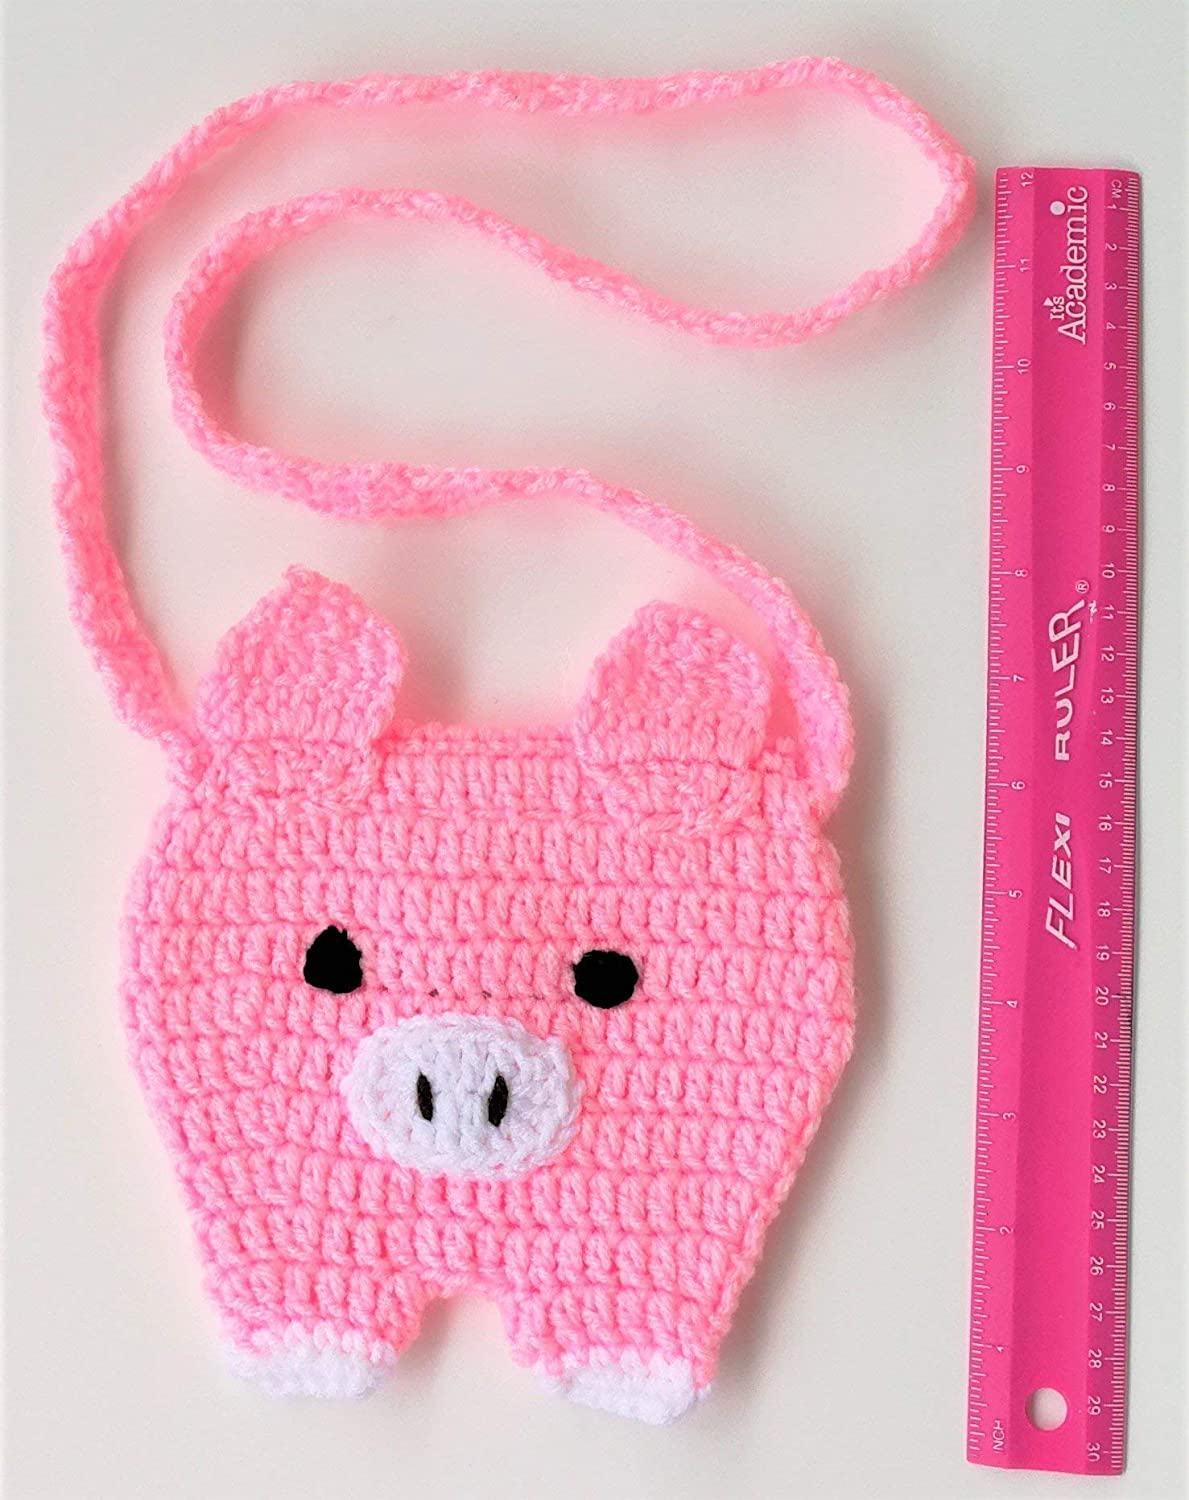 8 6 9,10 years old Kids Daughter Granddaughter Niece Pig Lovers Farm Animal Purses Handbag Present Valentine Days Gift Holidays Gifts For Girls 3 7 4 5